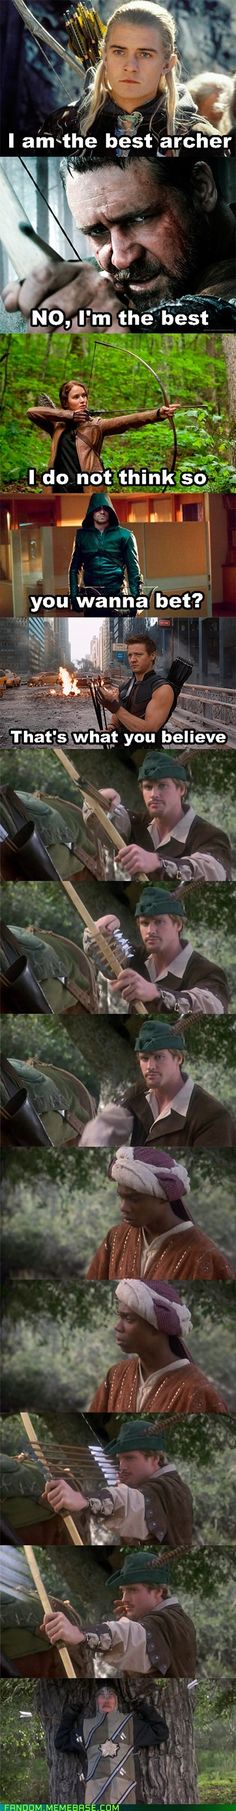 YES! We dont see enough Robin Hood Men in Tights references on Pinterest. Work on that people!